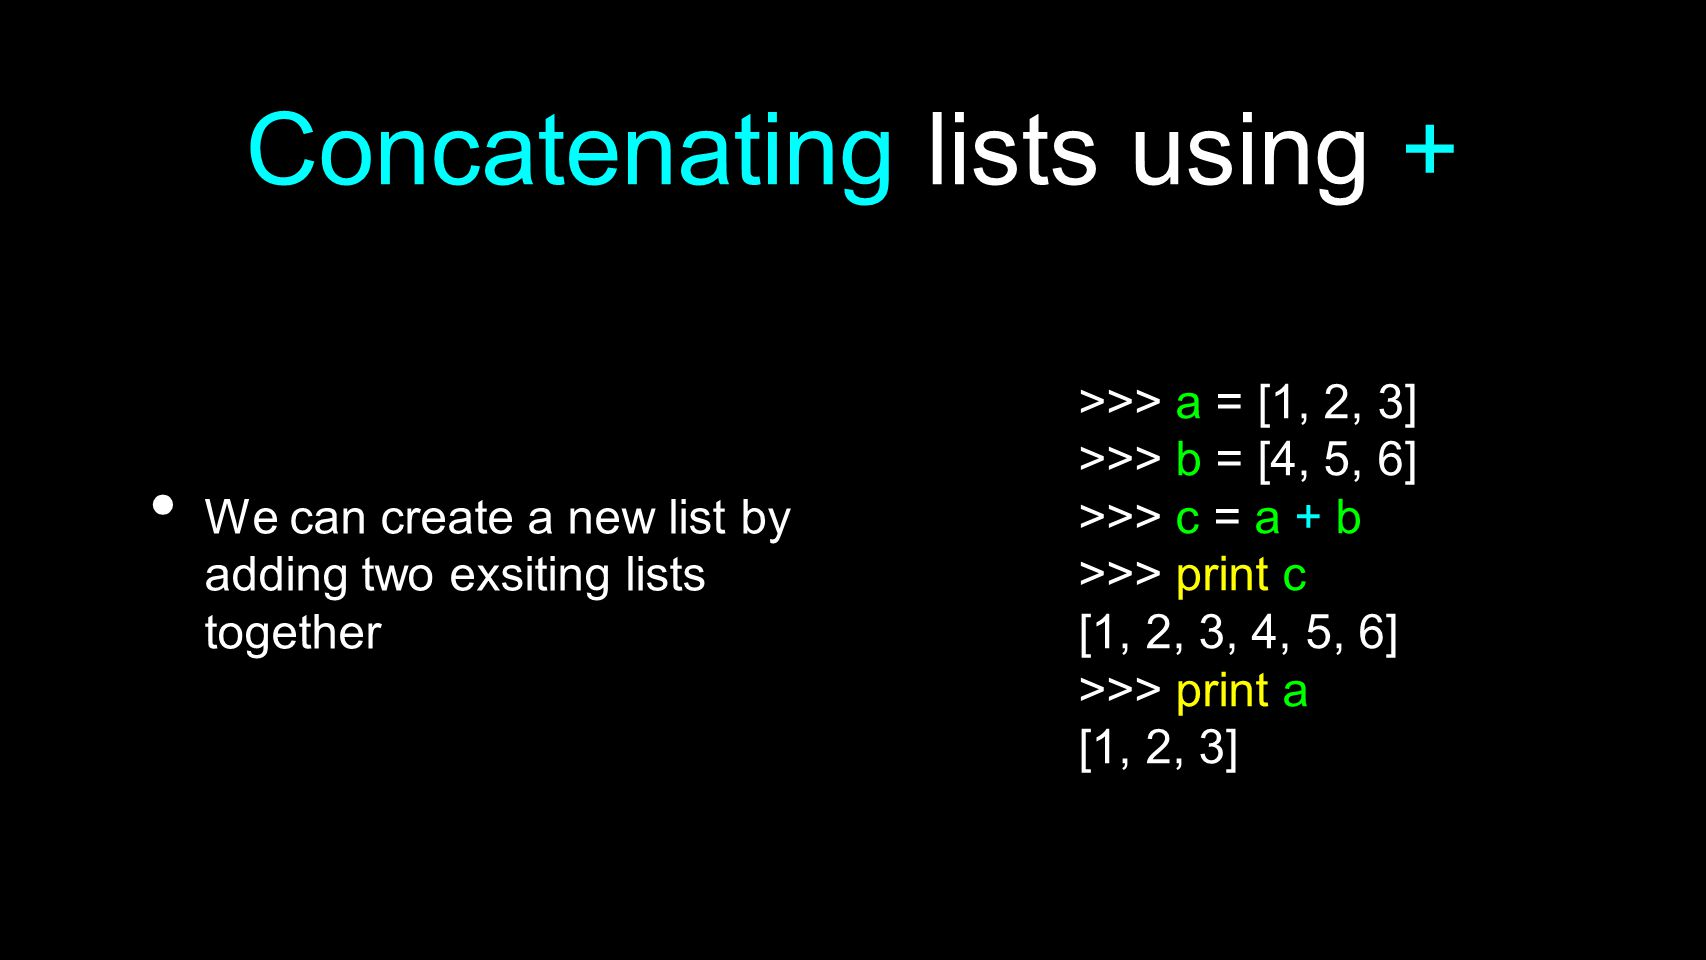 Concatenating lists using +